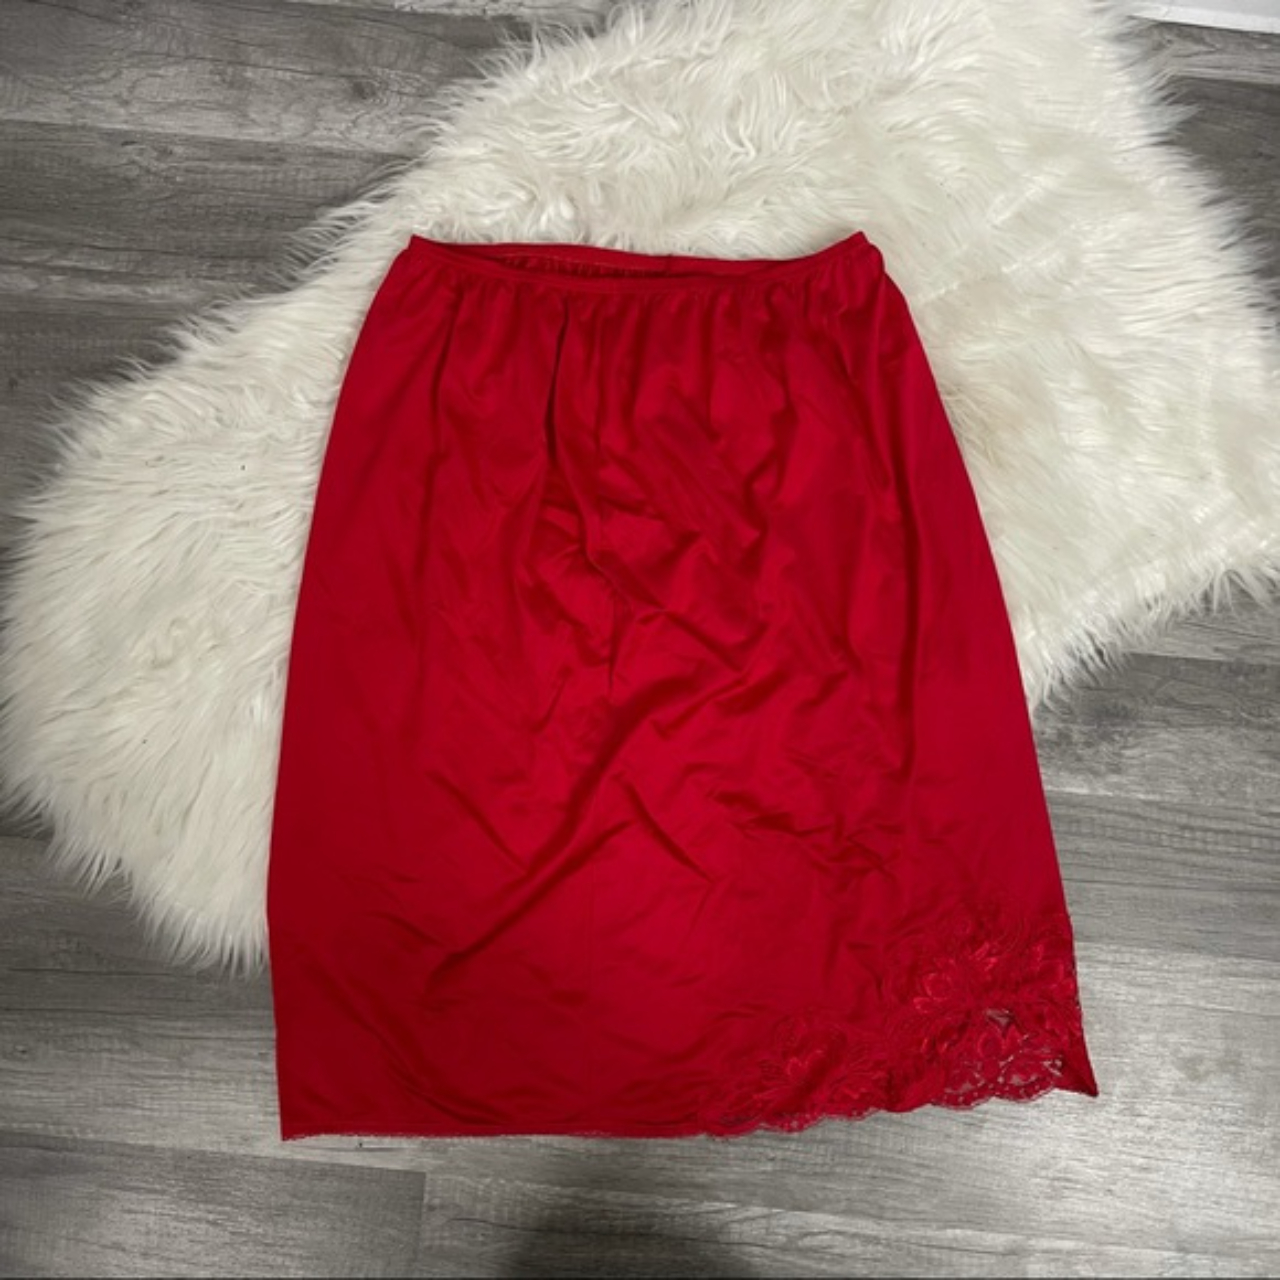 Product Image 1 - Vintage Red Skirt Slip with